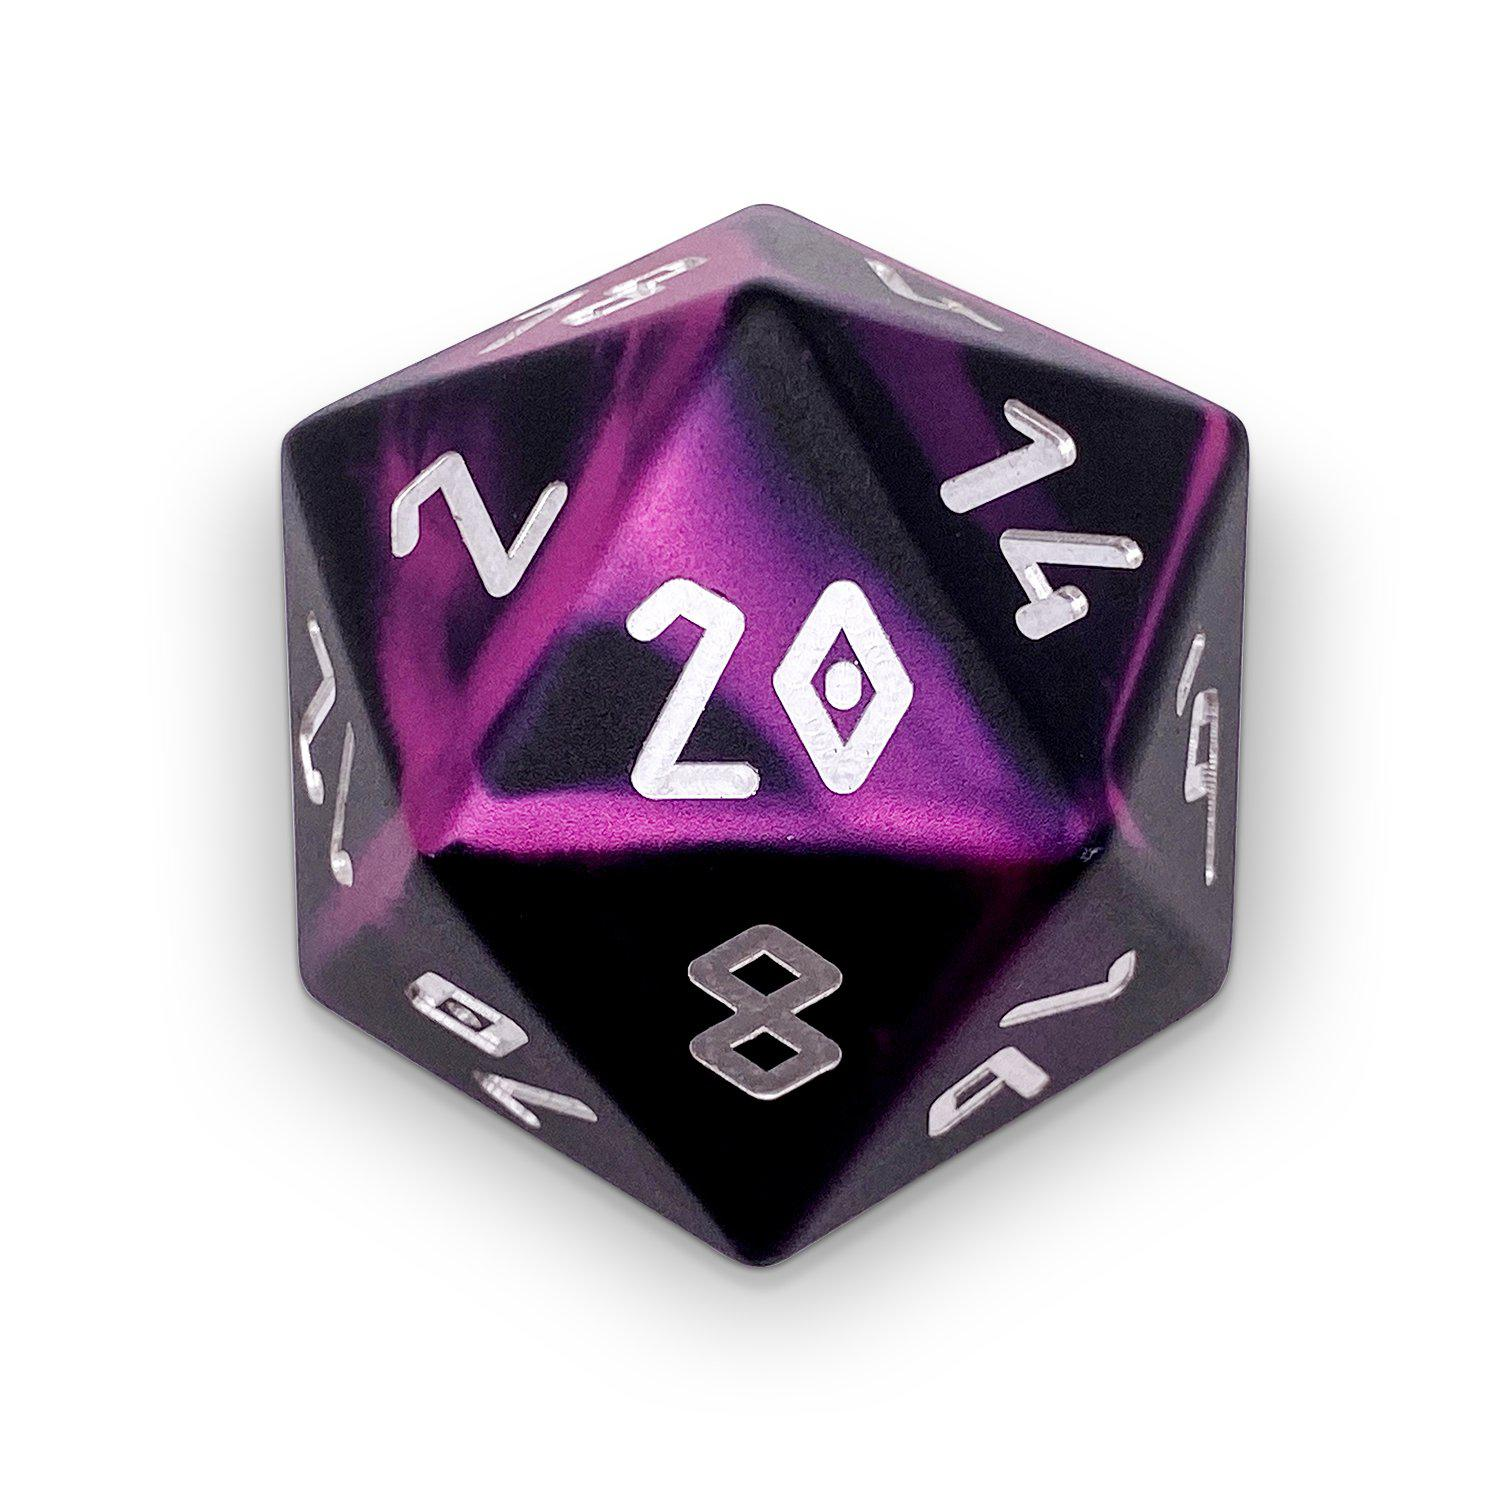 Eldritch - Wondrous Boulder® 55mm D20 6063 Aircraft Grade Aluminum Metal Die